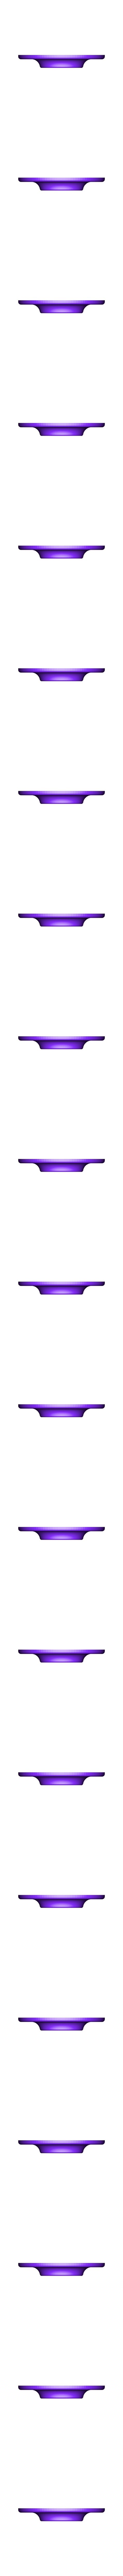 extractor 3.stl Download free STL file air extractor • 3D printer object, gabrielrf